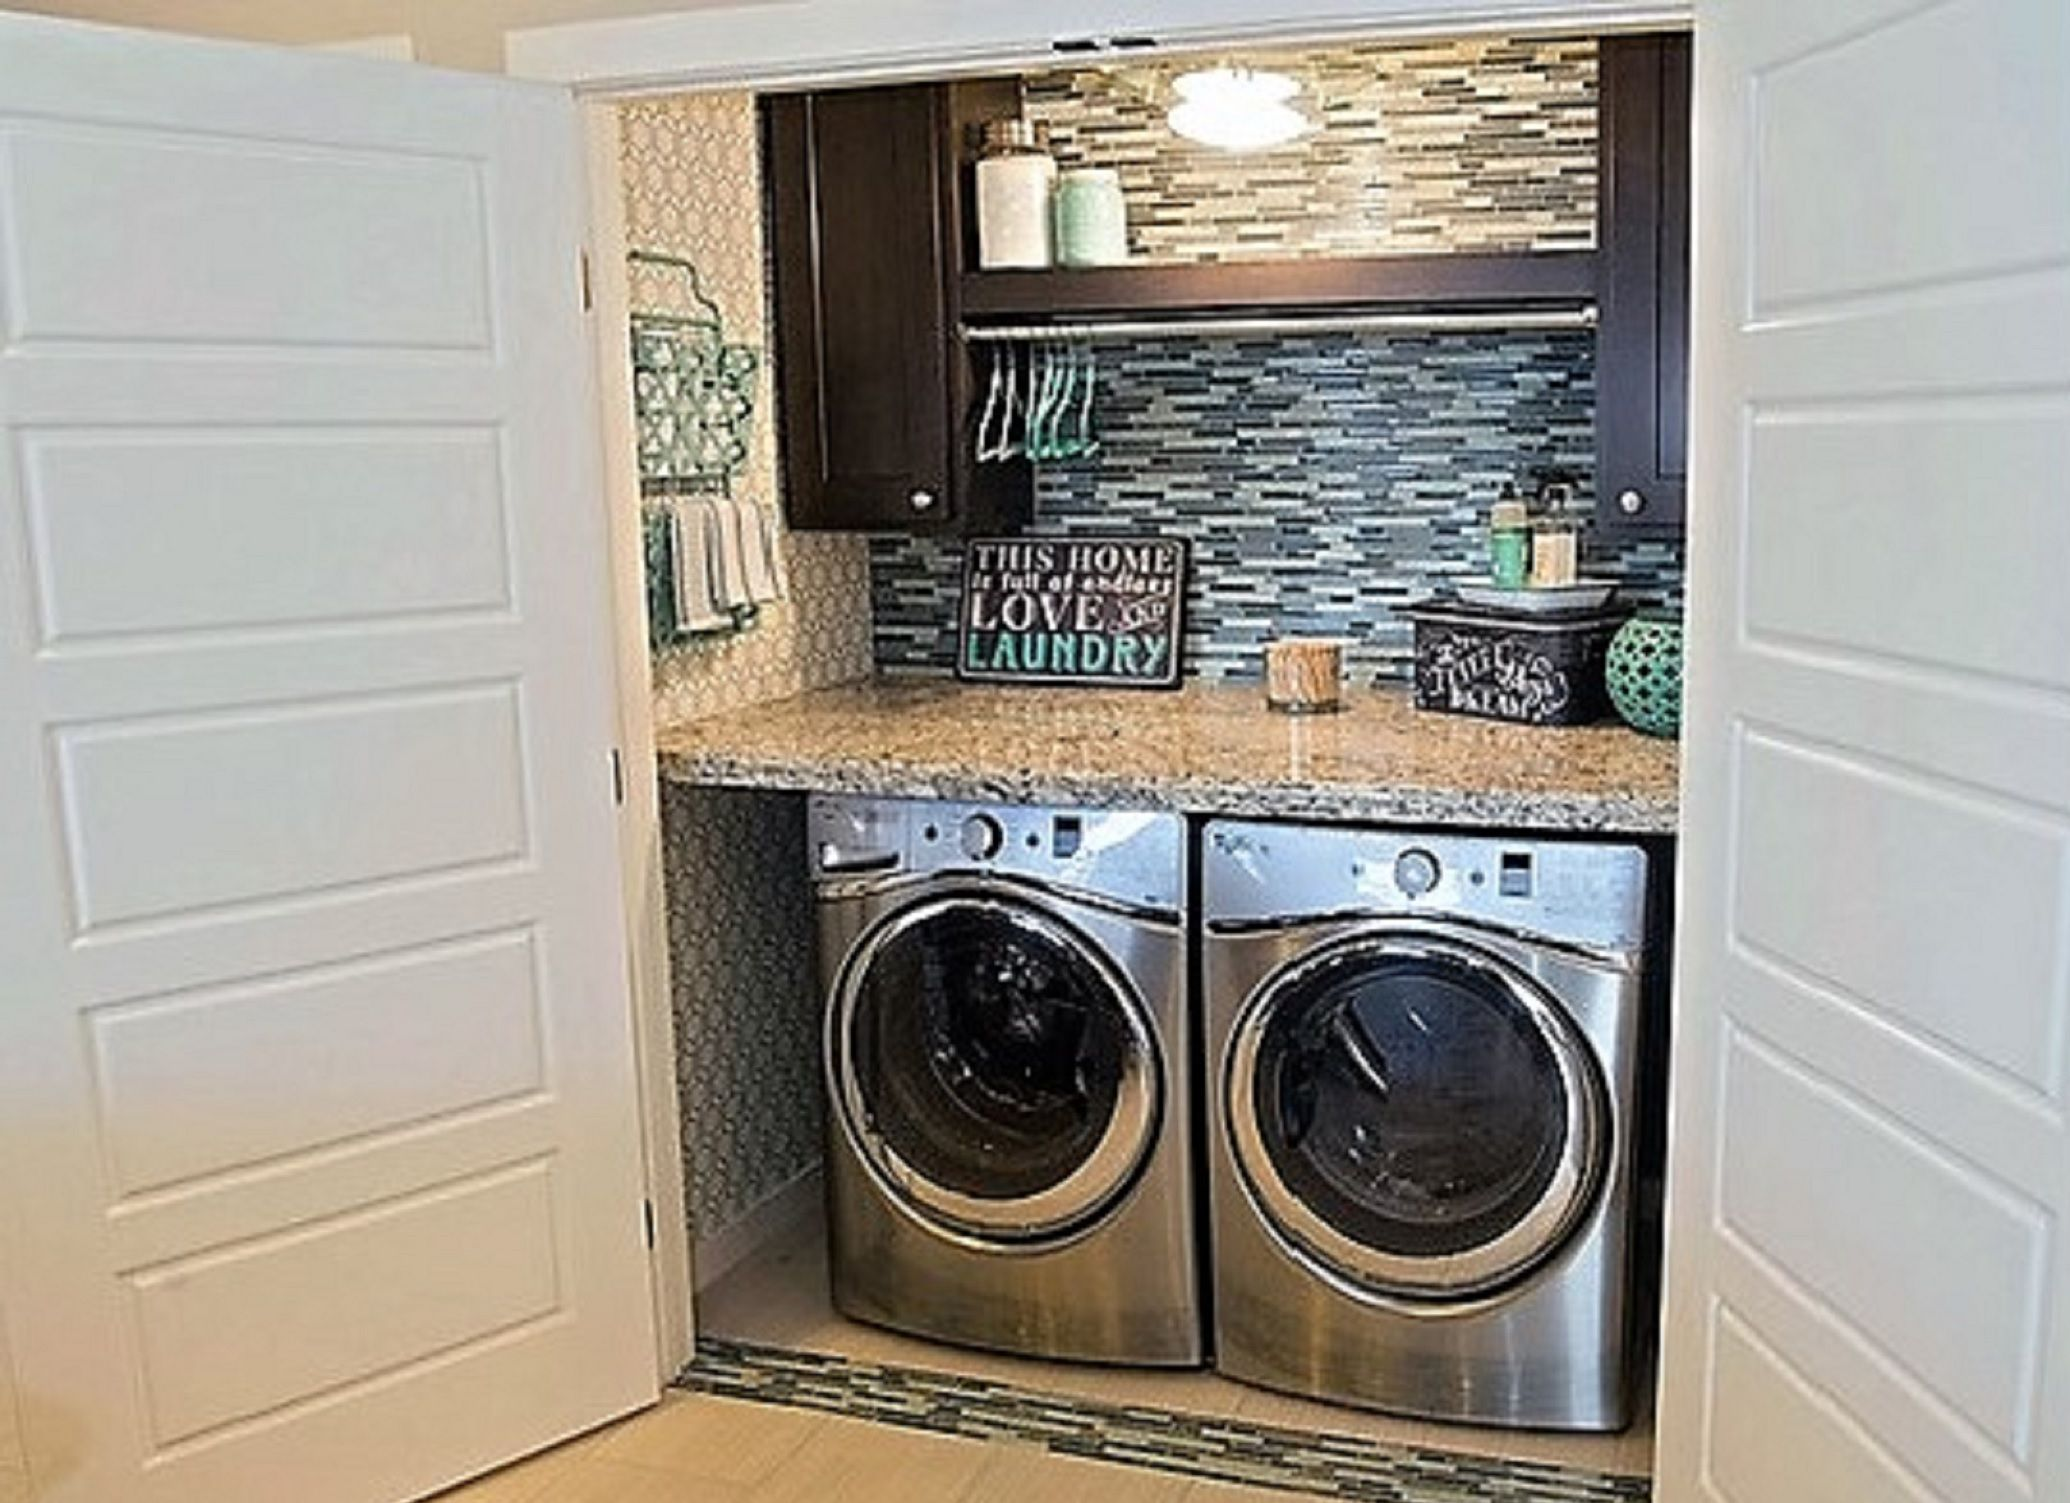 How to find space for a home laundry area for Laundry home